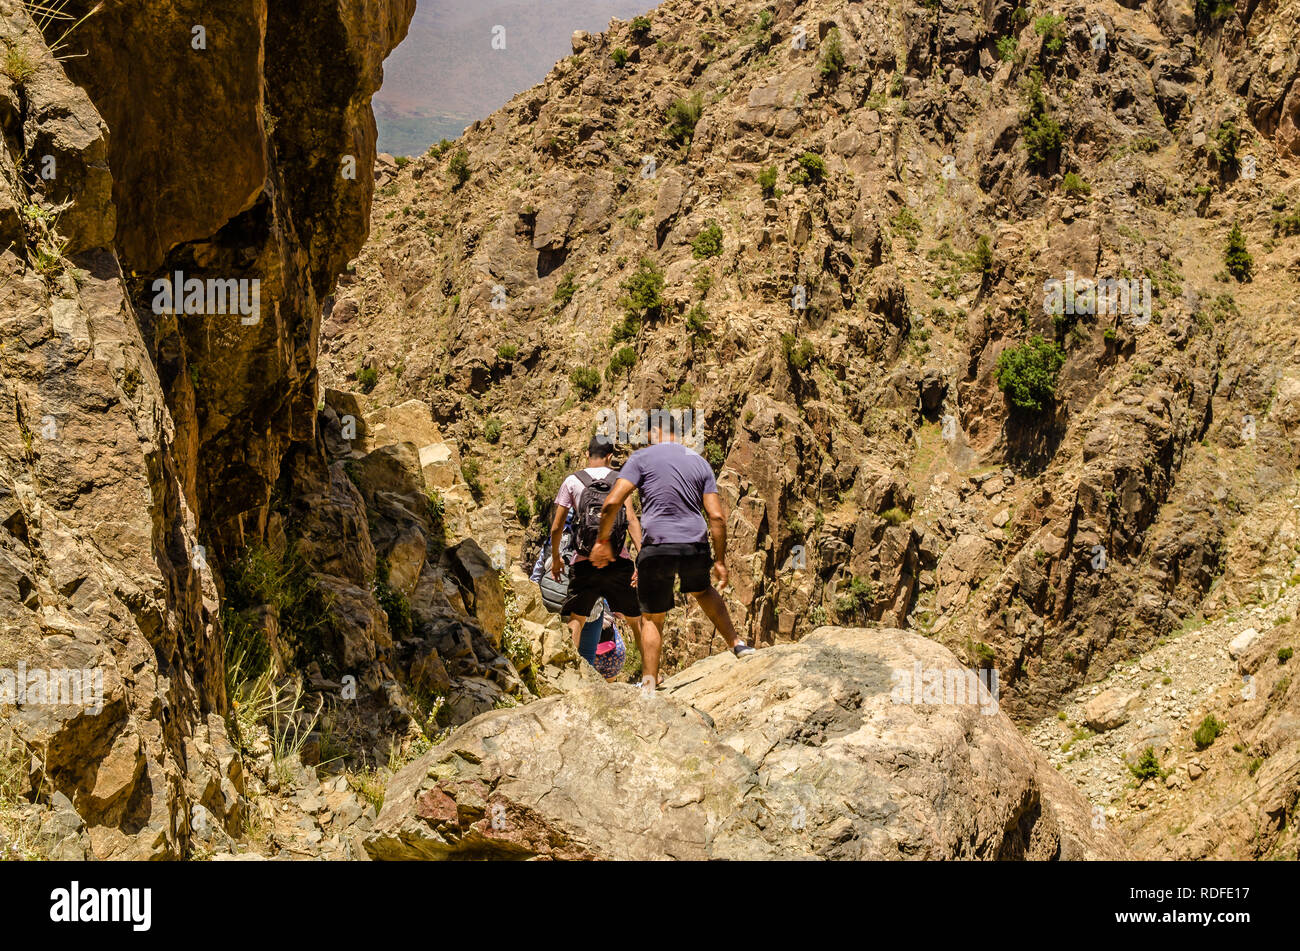 Hiking on Atlas mountains in Marrakesh, Morocco - Stock Image